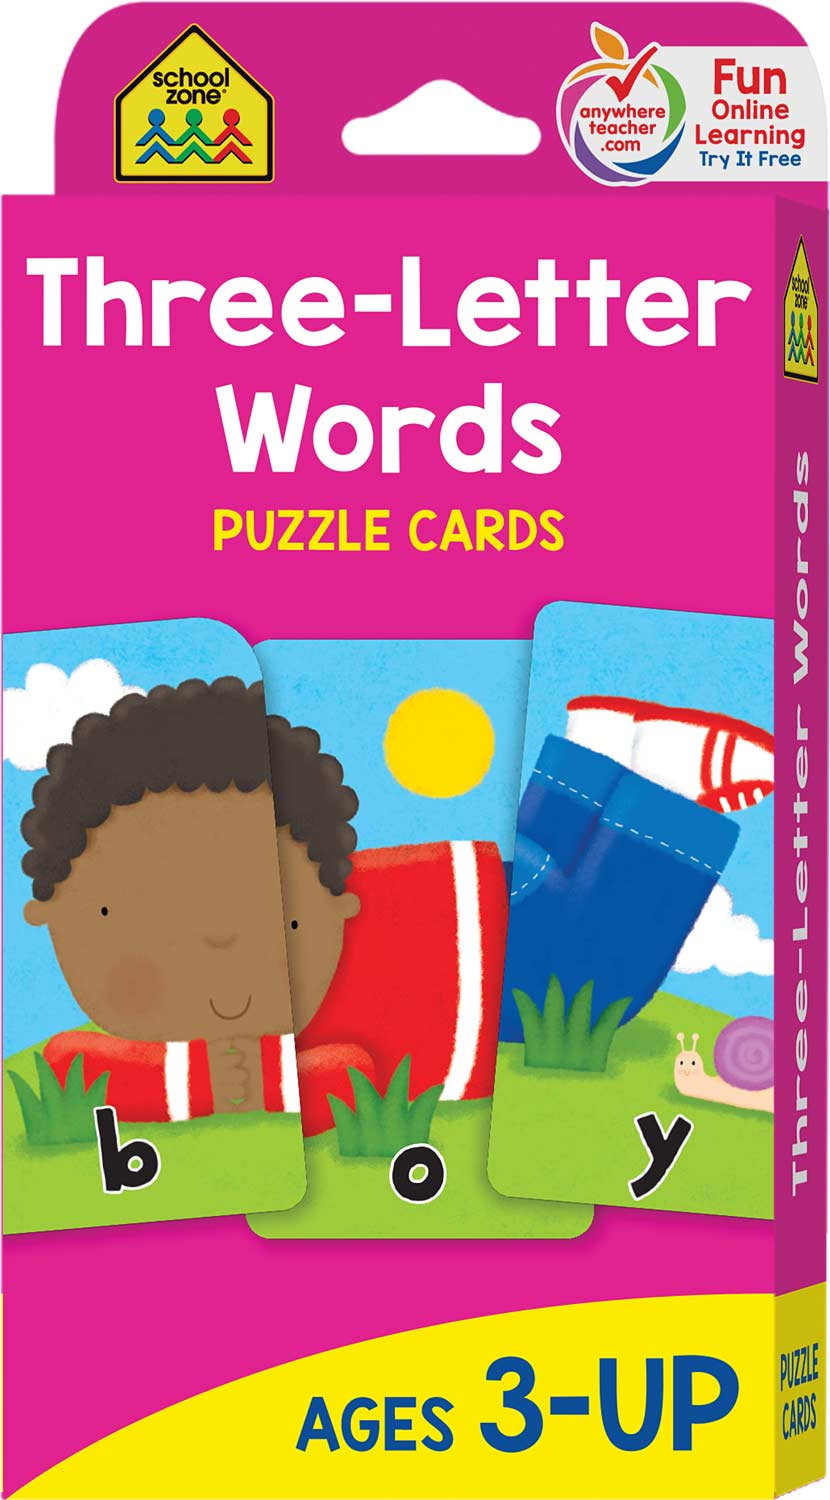 Three-Letter Words Puzzle Cards - Kool & Child